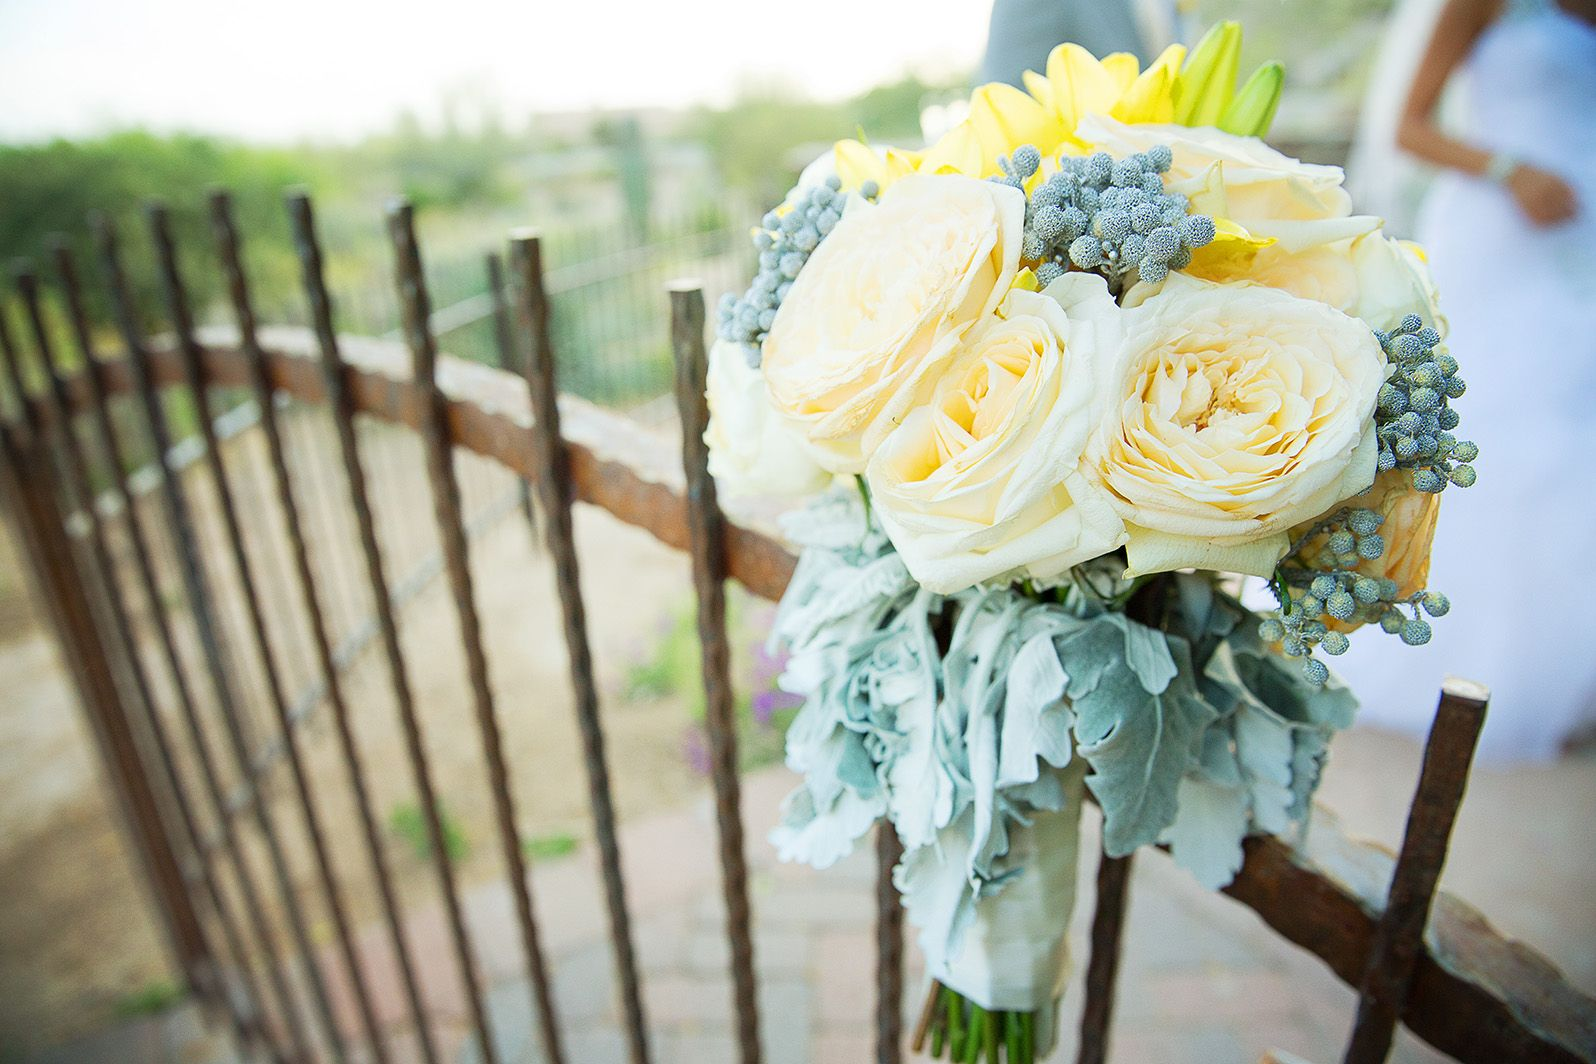 Bride's muted yellow and ivory rose bouquet Venue - Sassi Photographer - Terry McKaig #rusticwedding #yellowbouquet